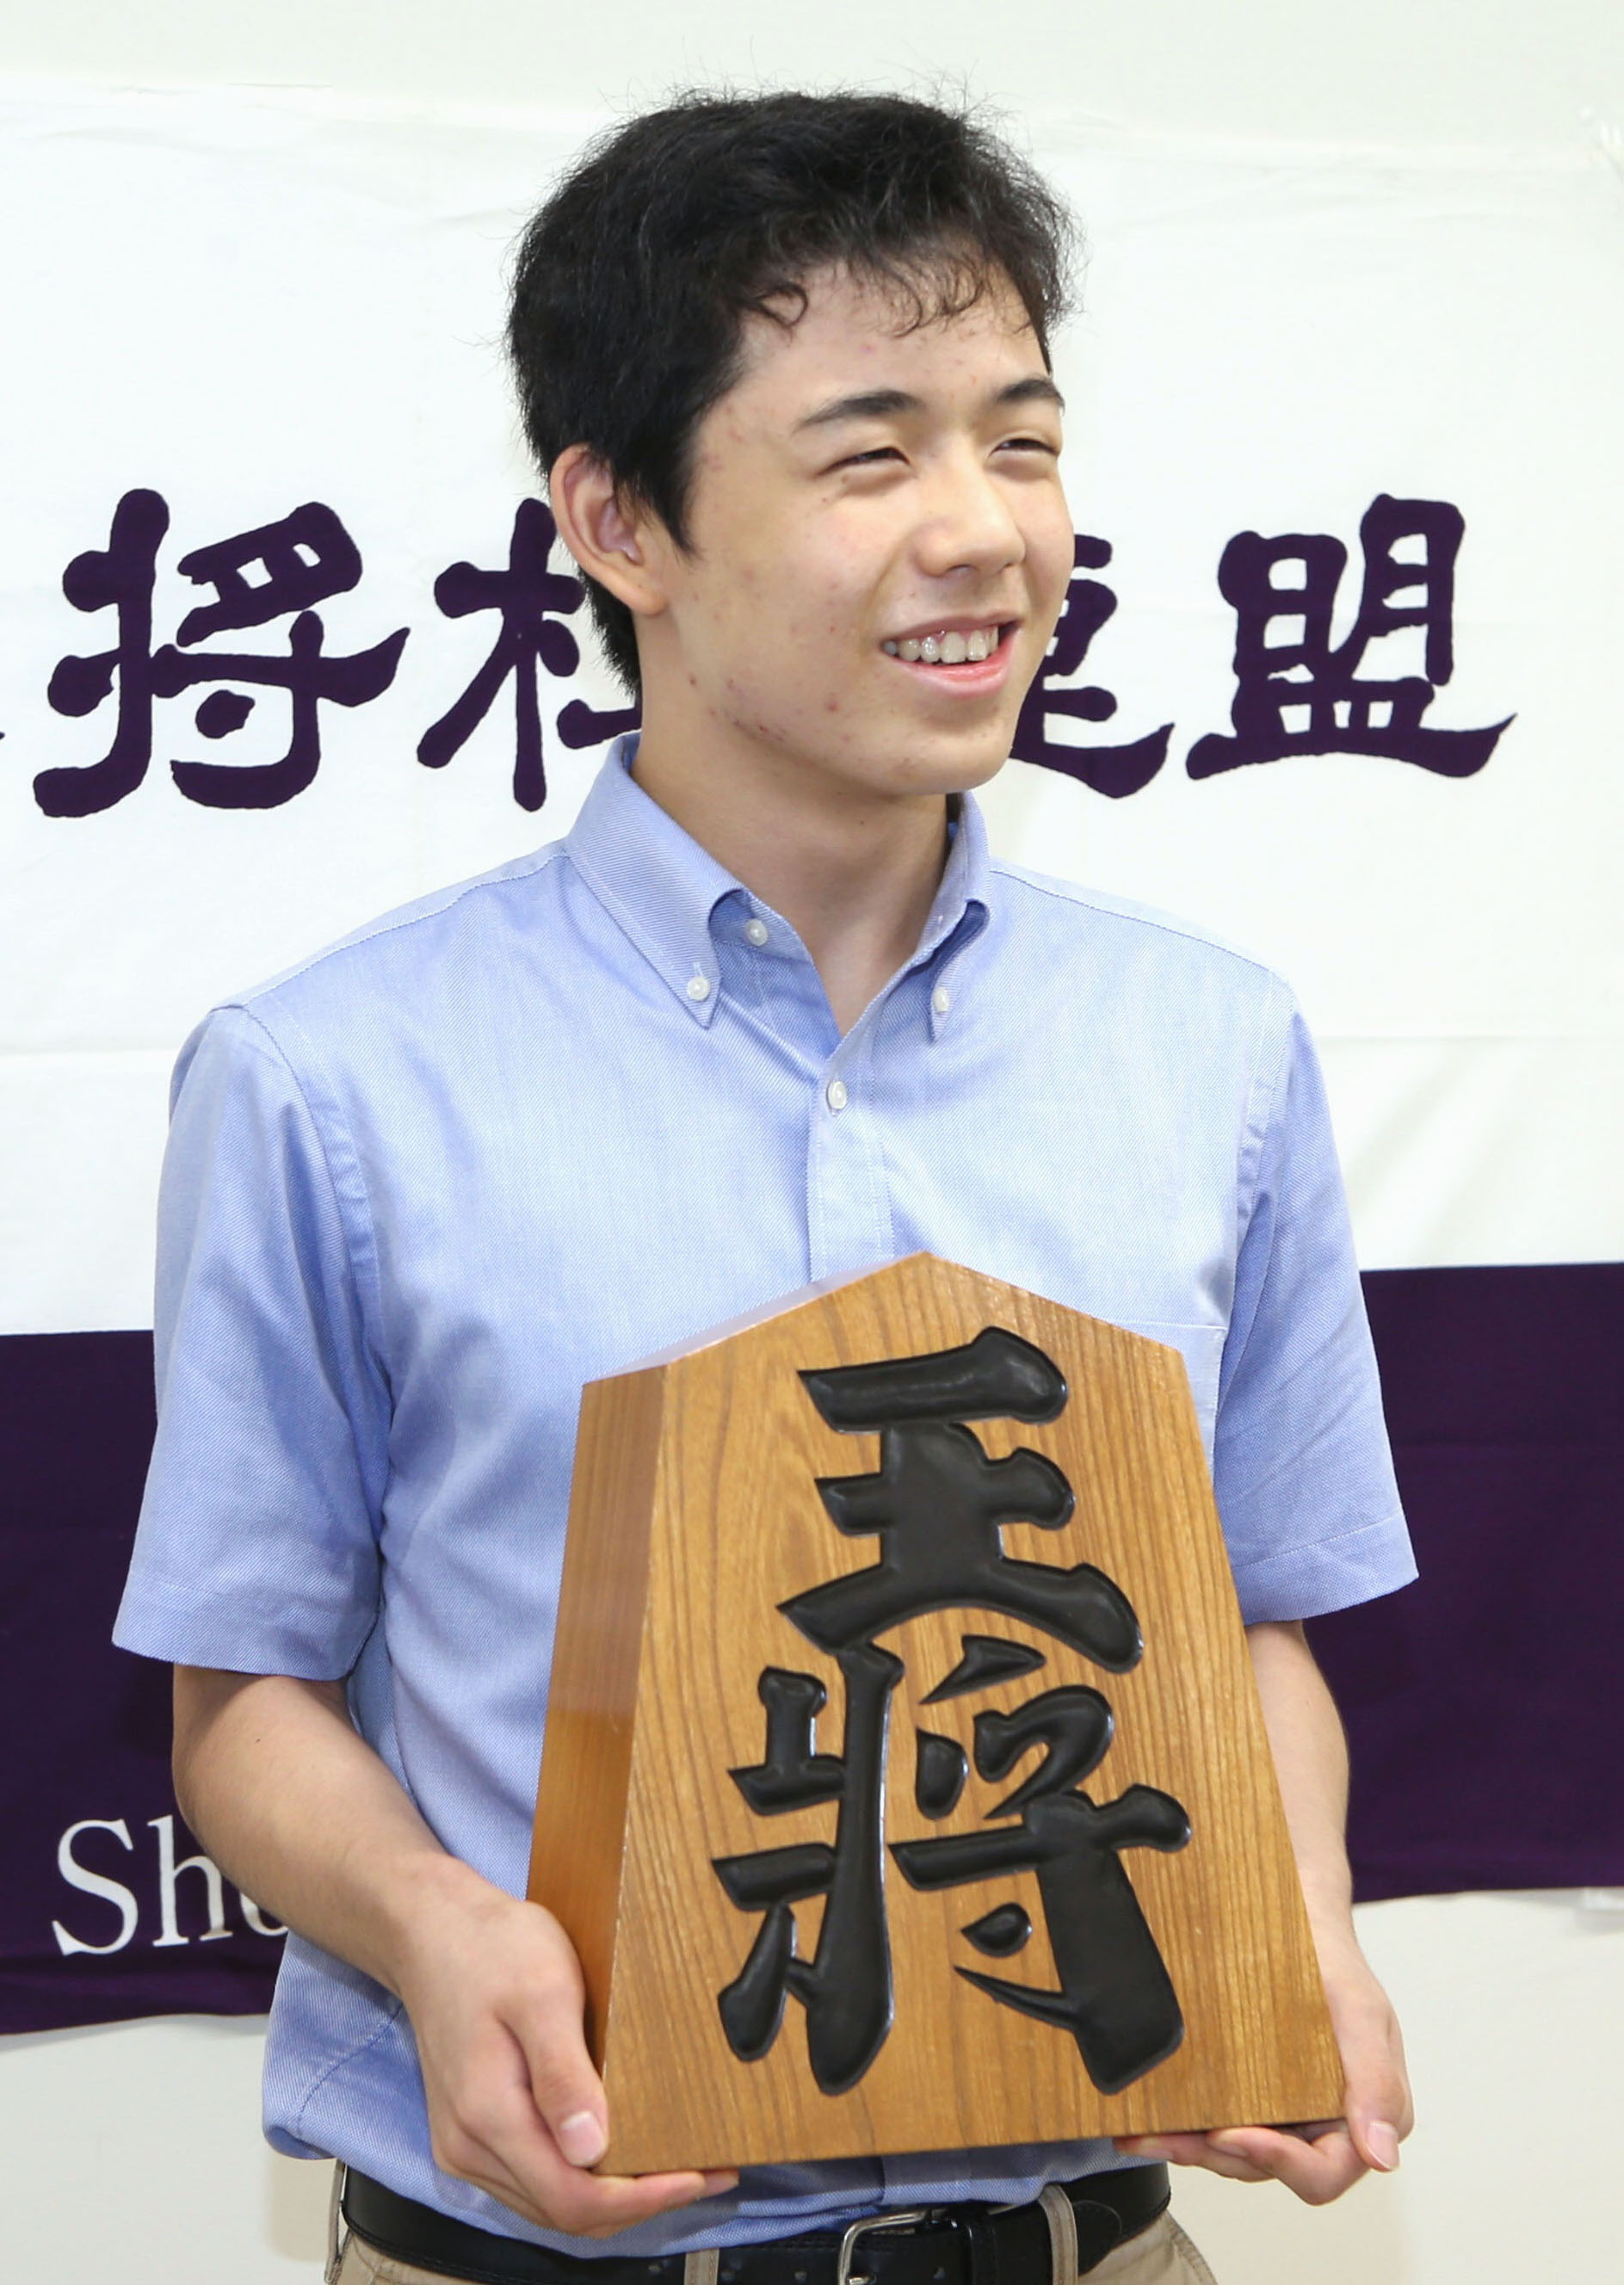 14-yr-old shogi star Fujii known for fiery competitive spirit